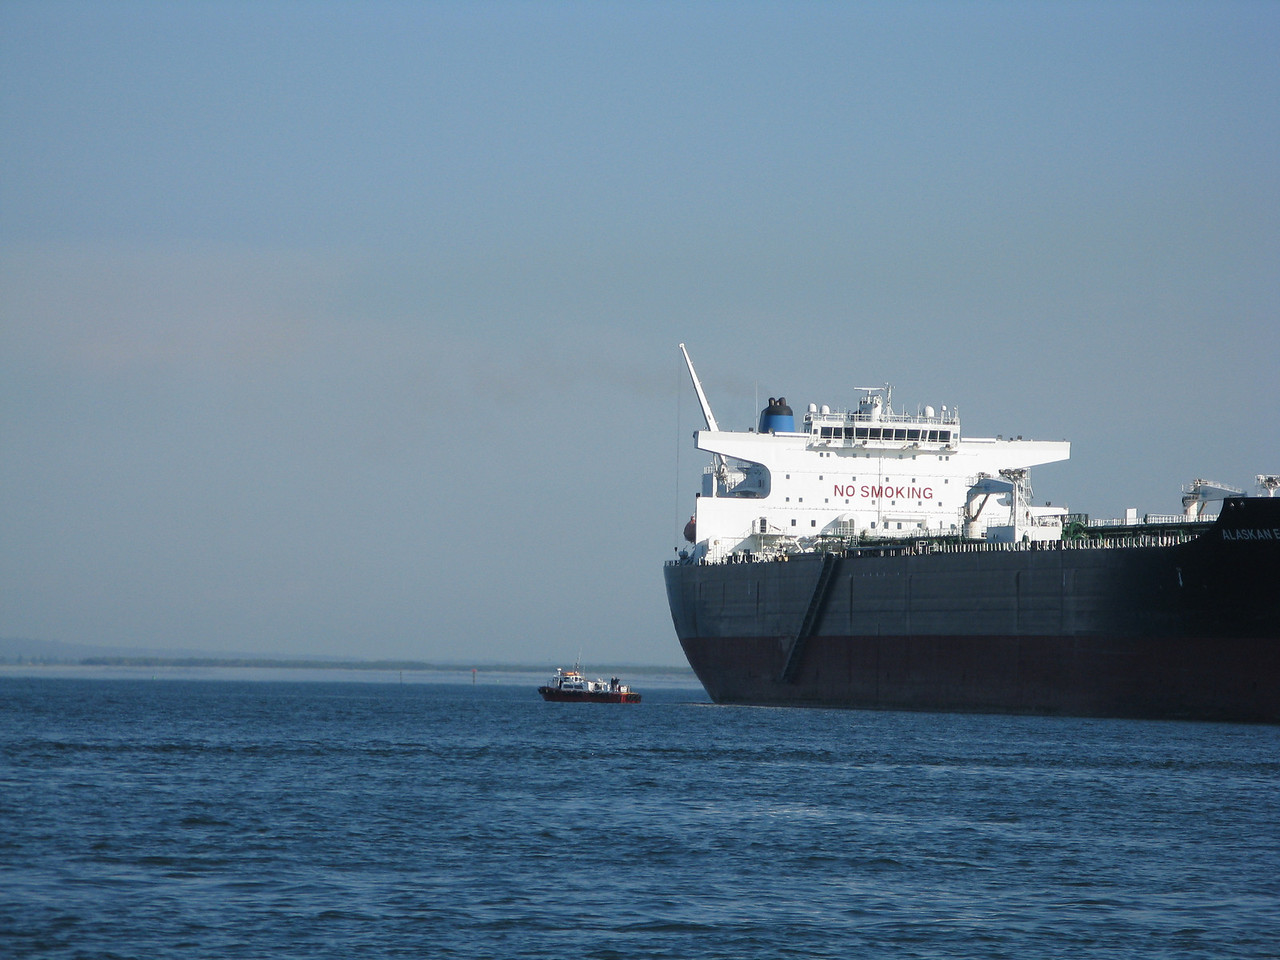 A pilot boat arrived at the oil tanker.   The pilot is a captain who guides the ship safely out to the open ocean.